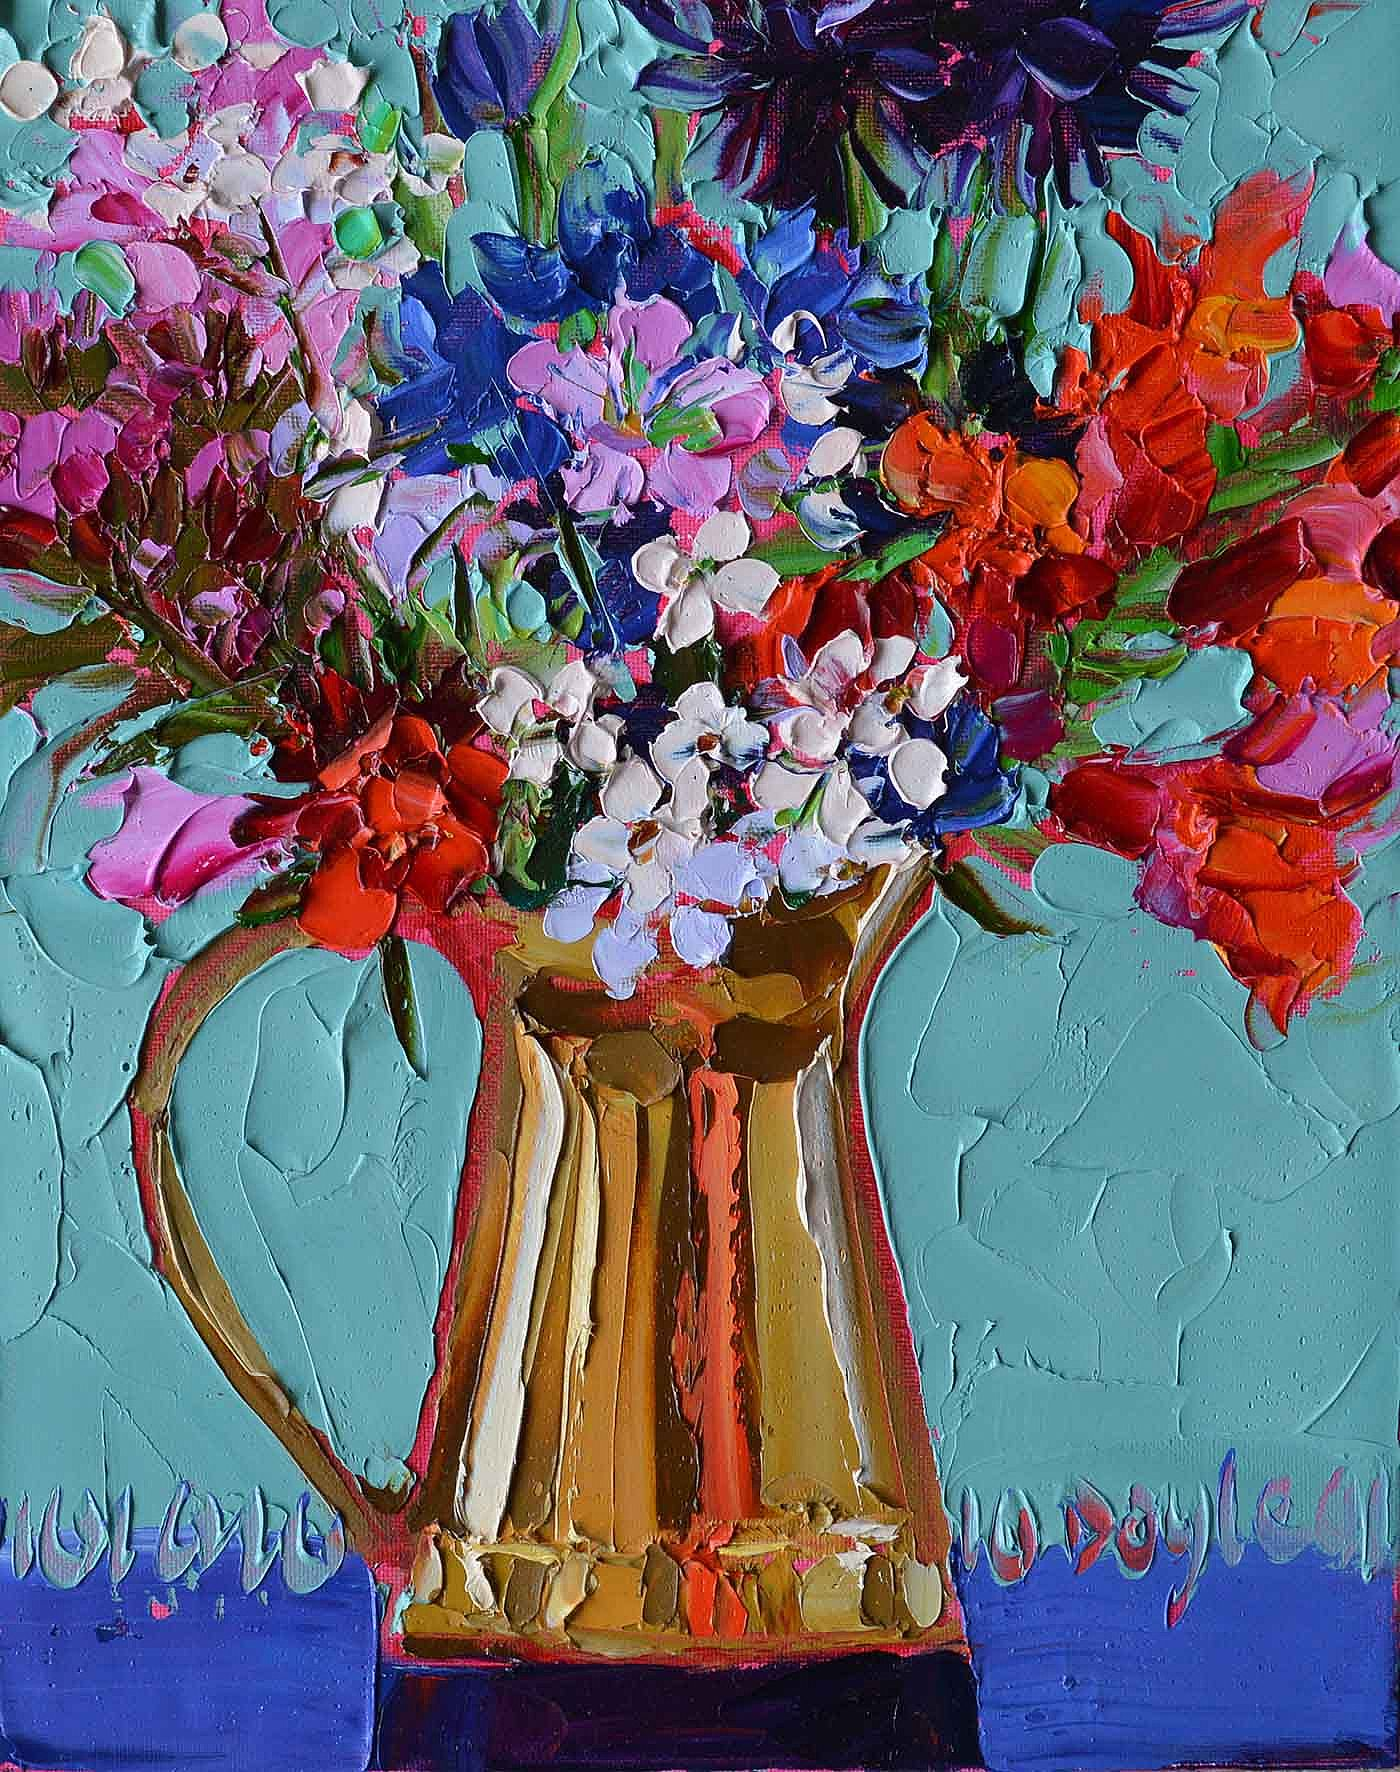 Lucy Doyle - Pots and Posies 4